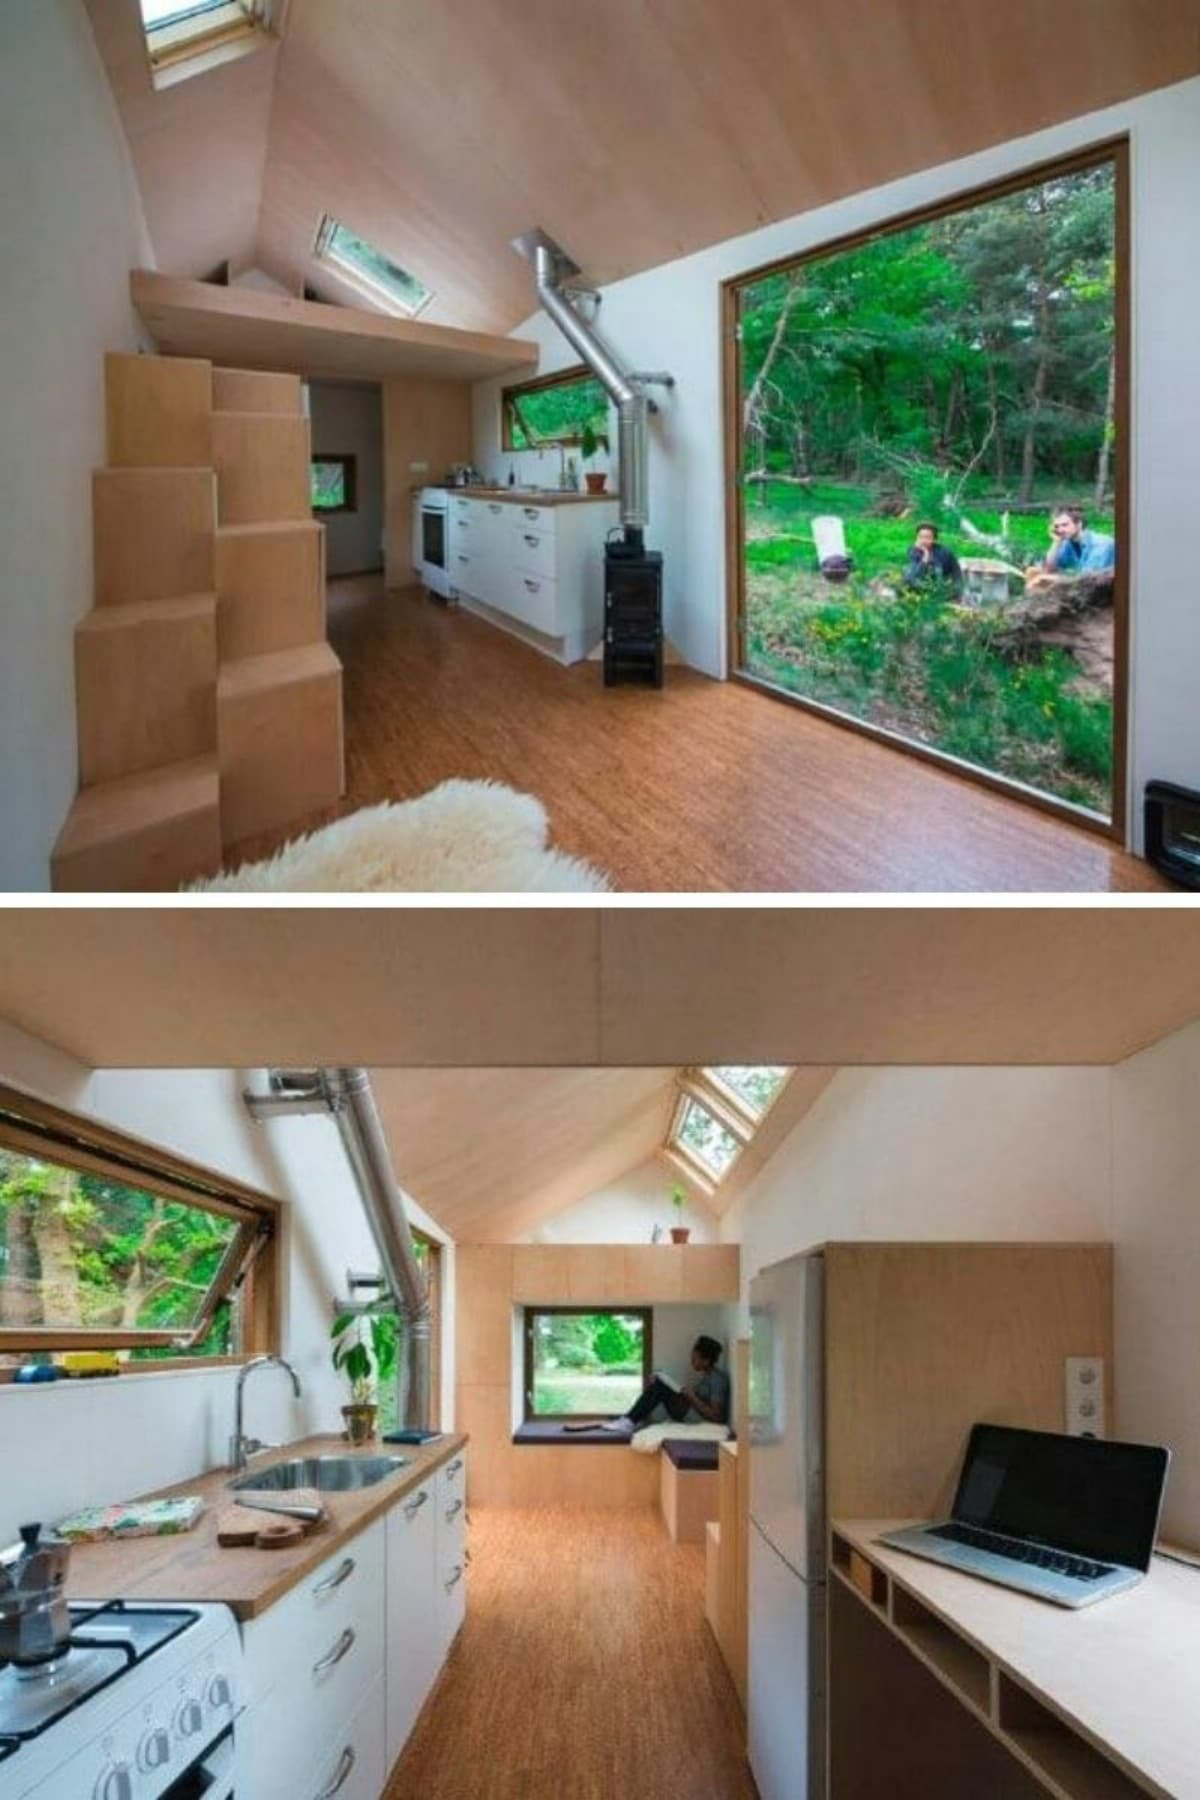 The First Legal Tiny House in the Netherlands